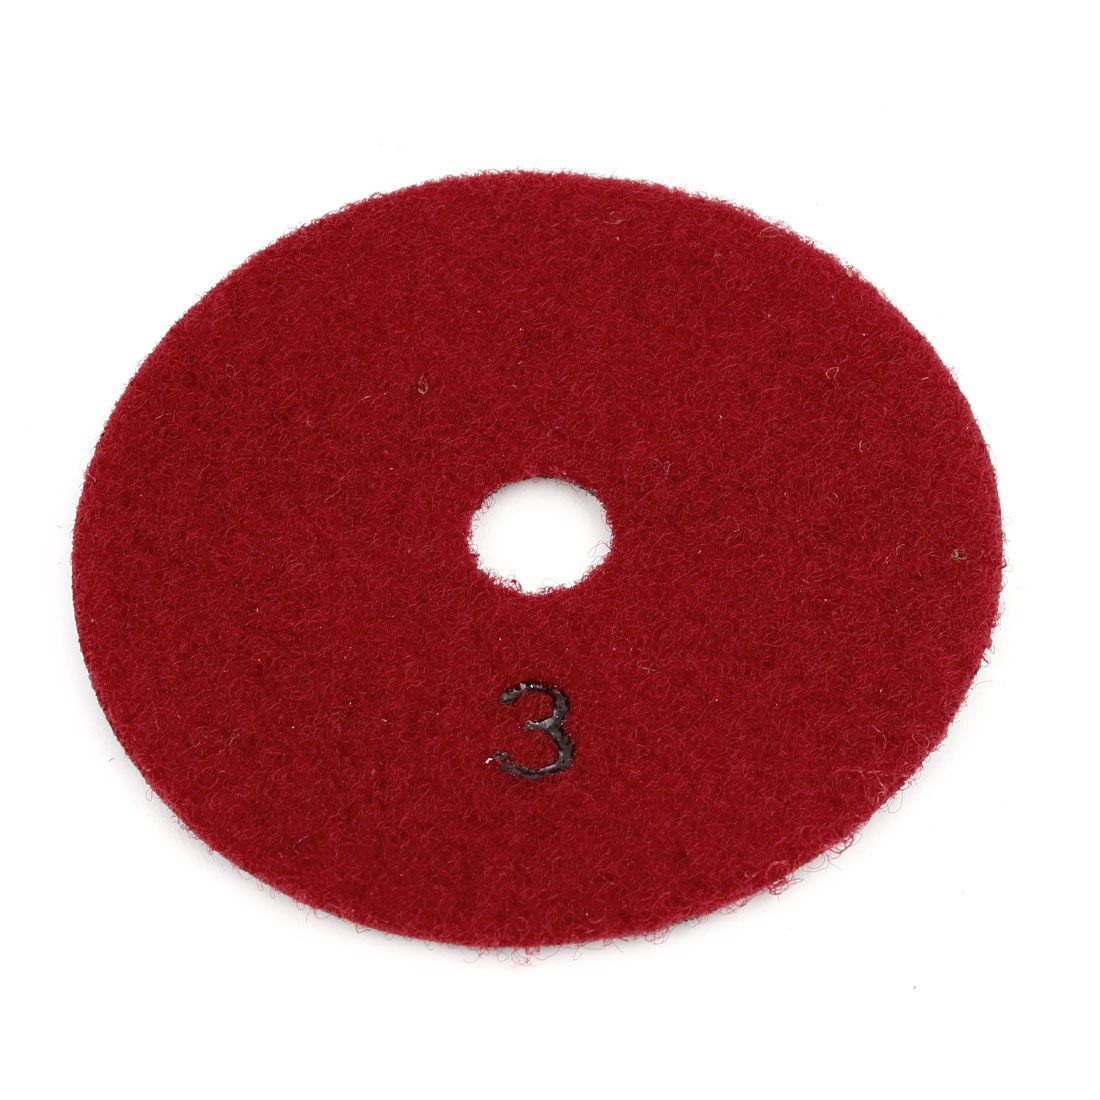 Burgundy Dry Wet Diamond Polishing Pad Disc 10cm Dia for Floor Grinding